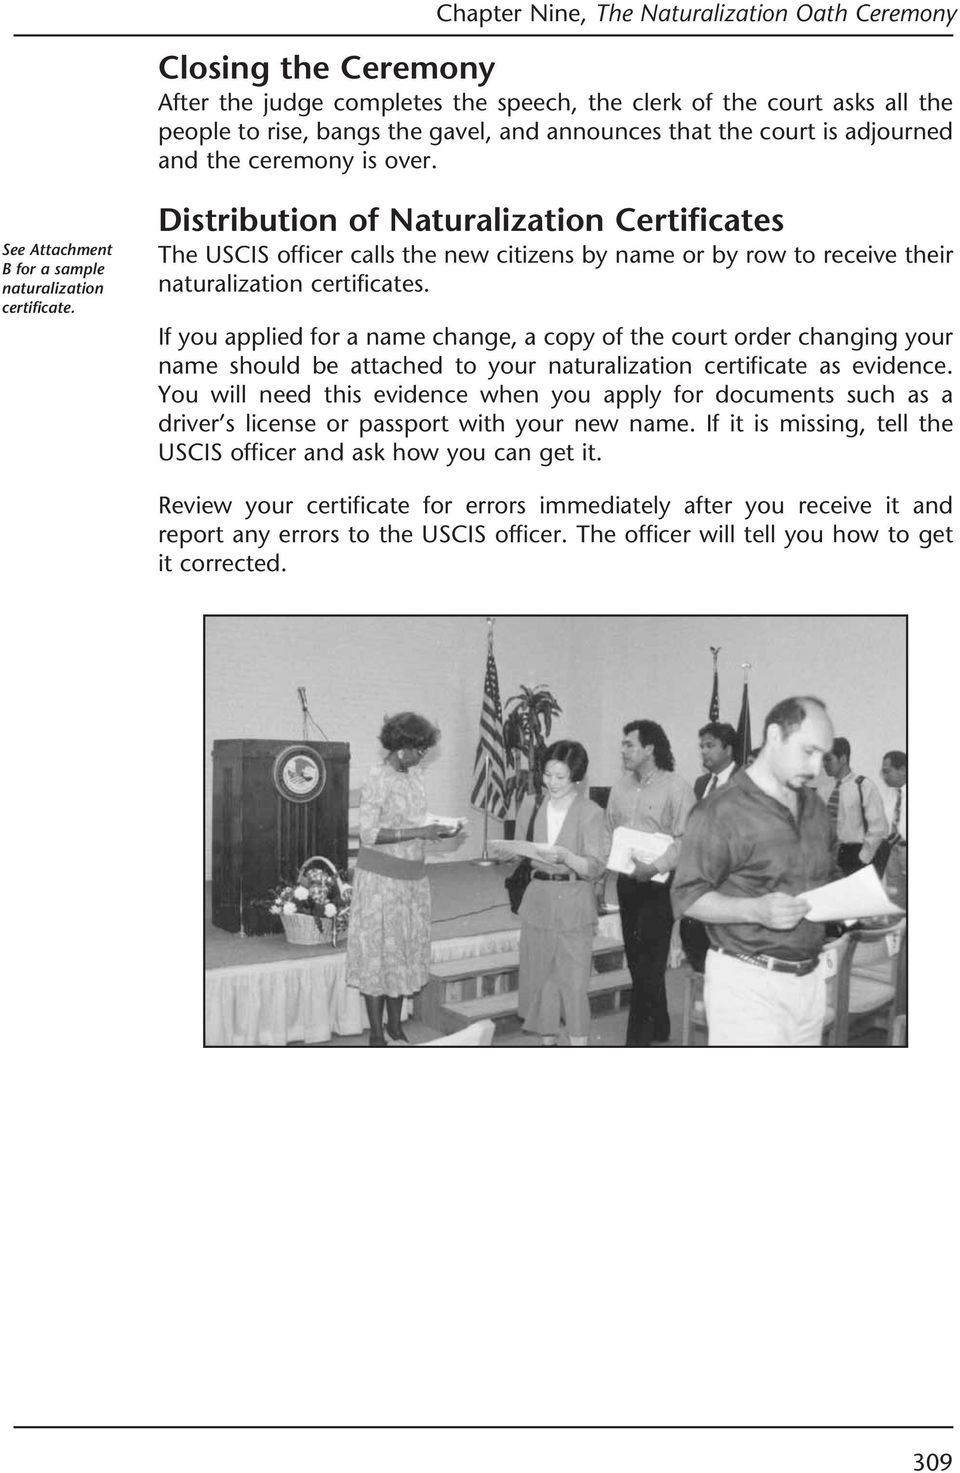 The Naturalization Oath Ceremony Pdf